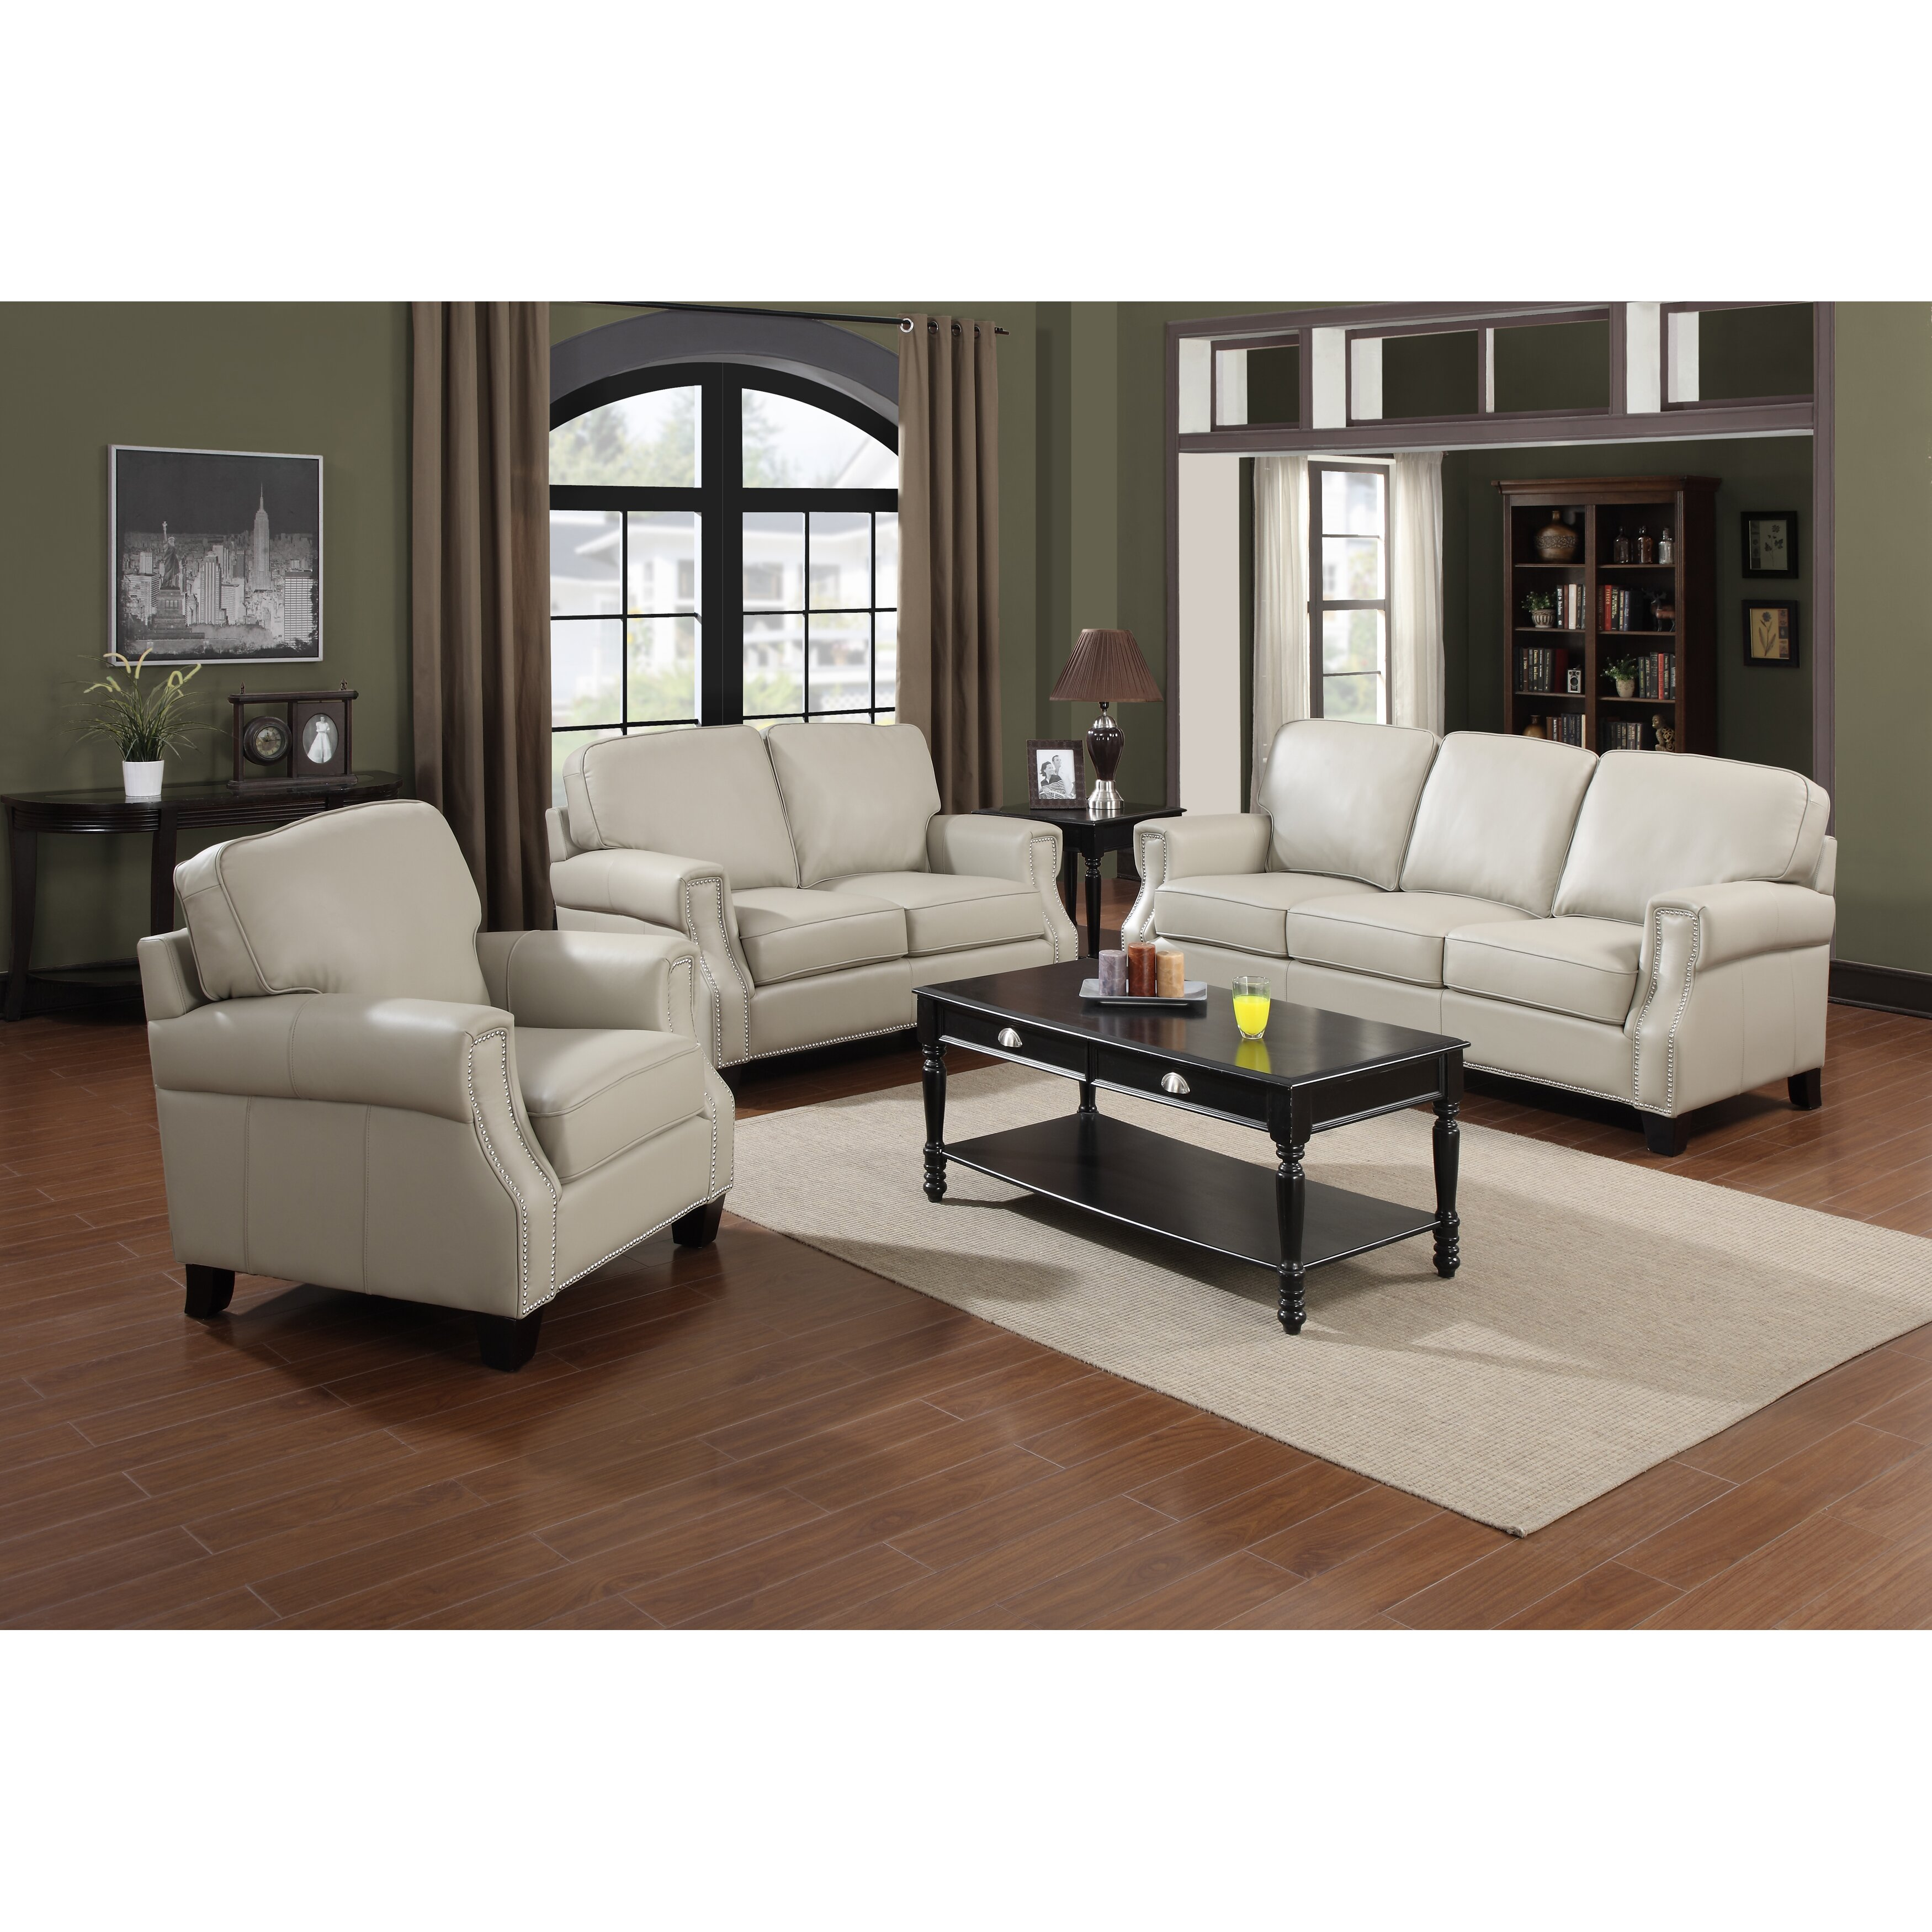 At Home Designs Uptown Living Room Collection Reviews Wayfair